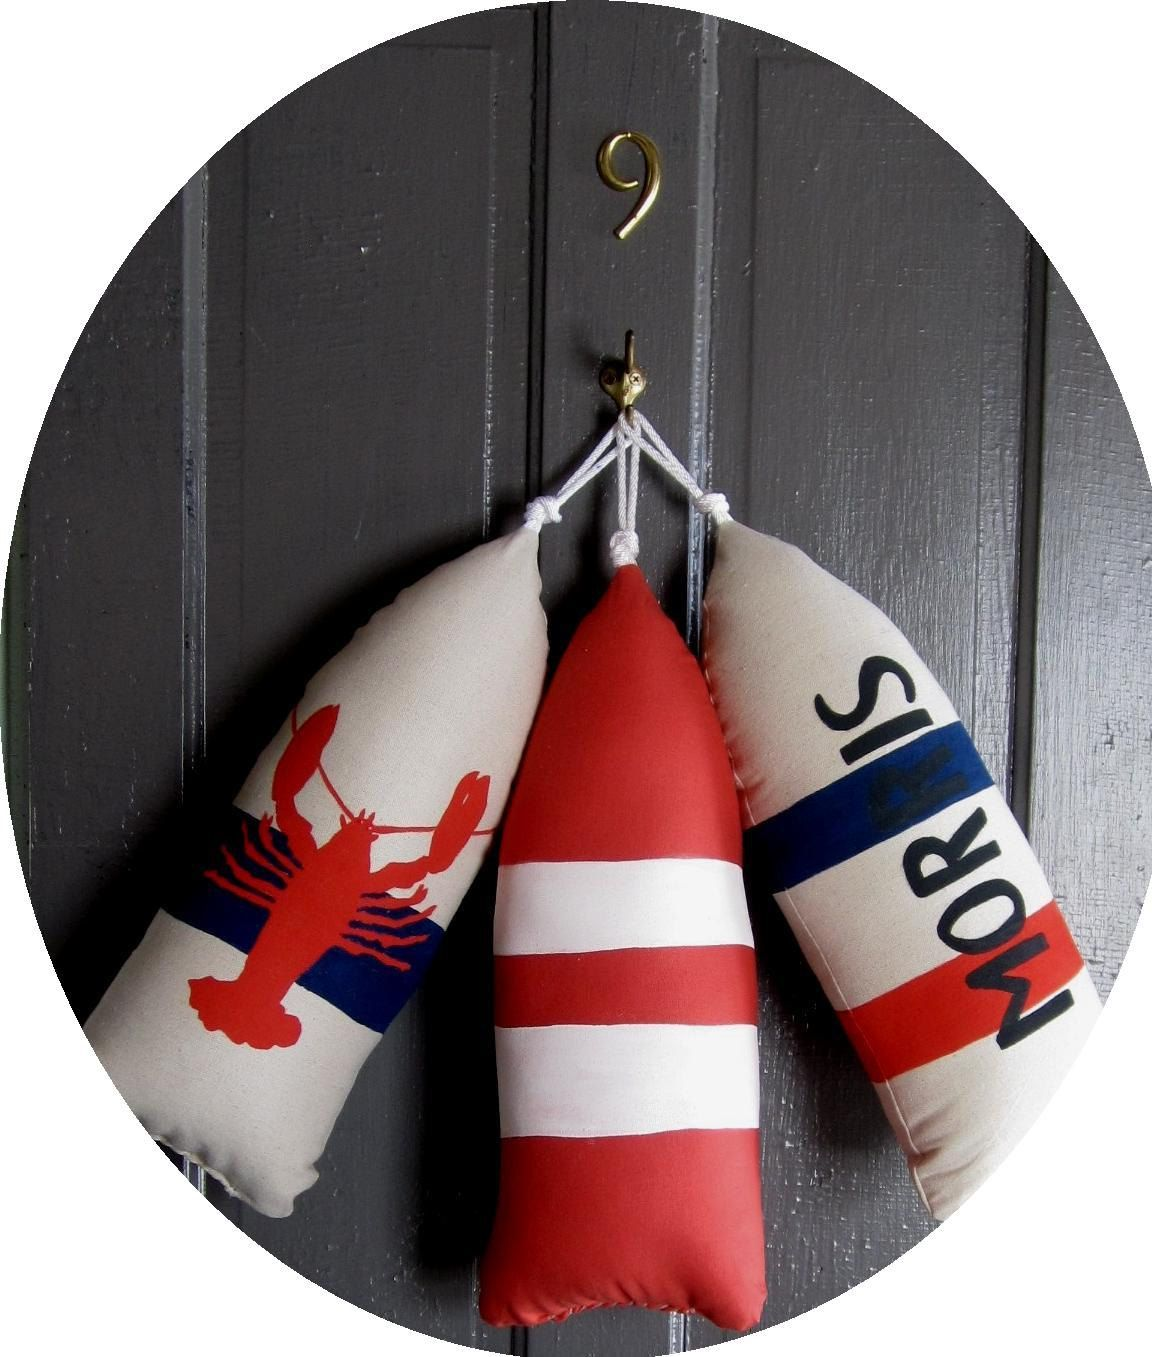 Maine lobster buoy pillowgifts under 45life by